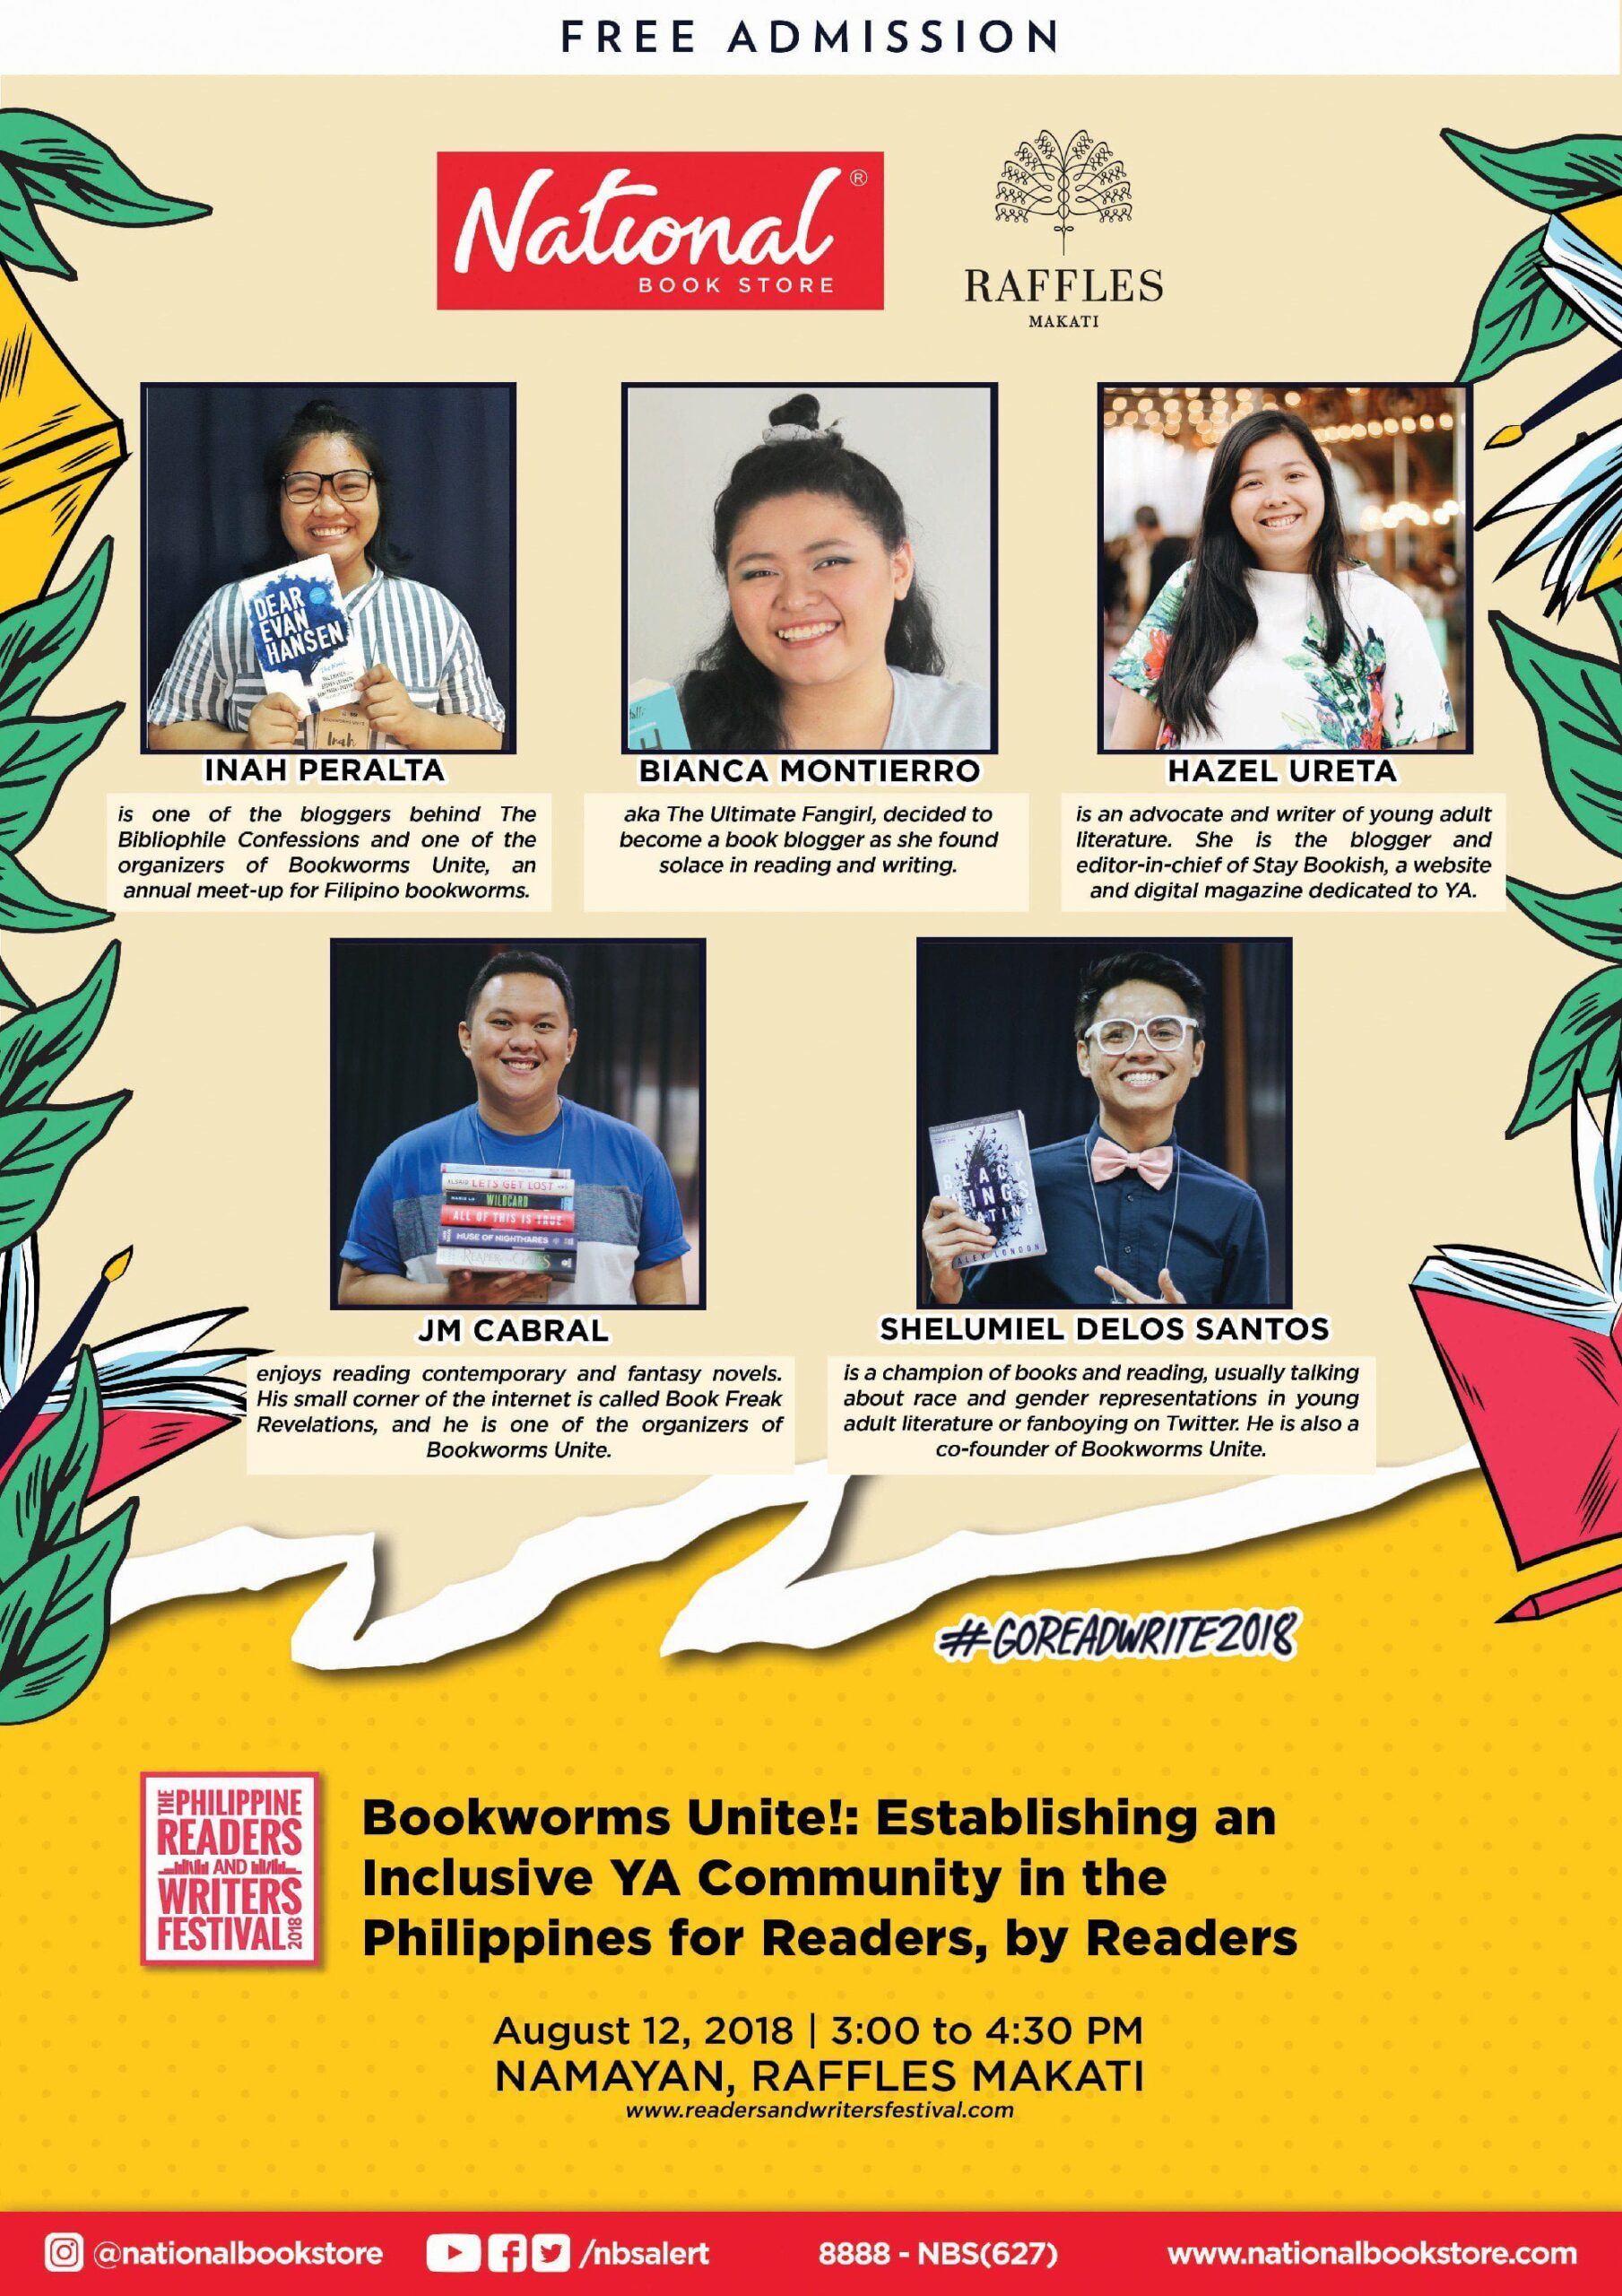 philippine readers and writers festival 2018